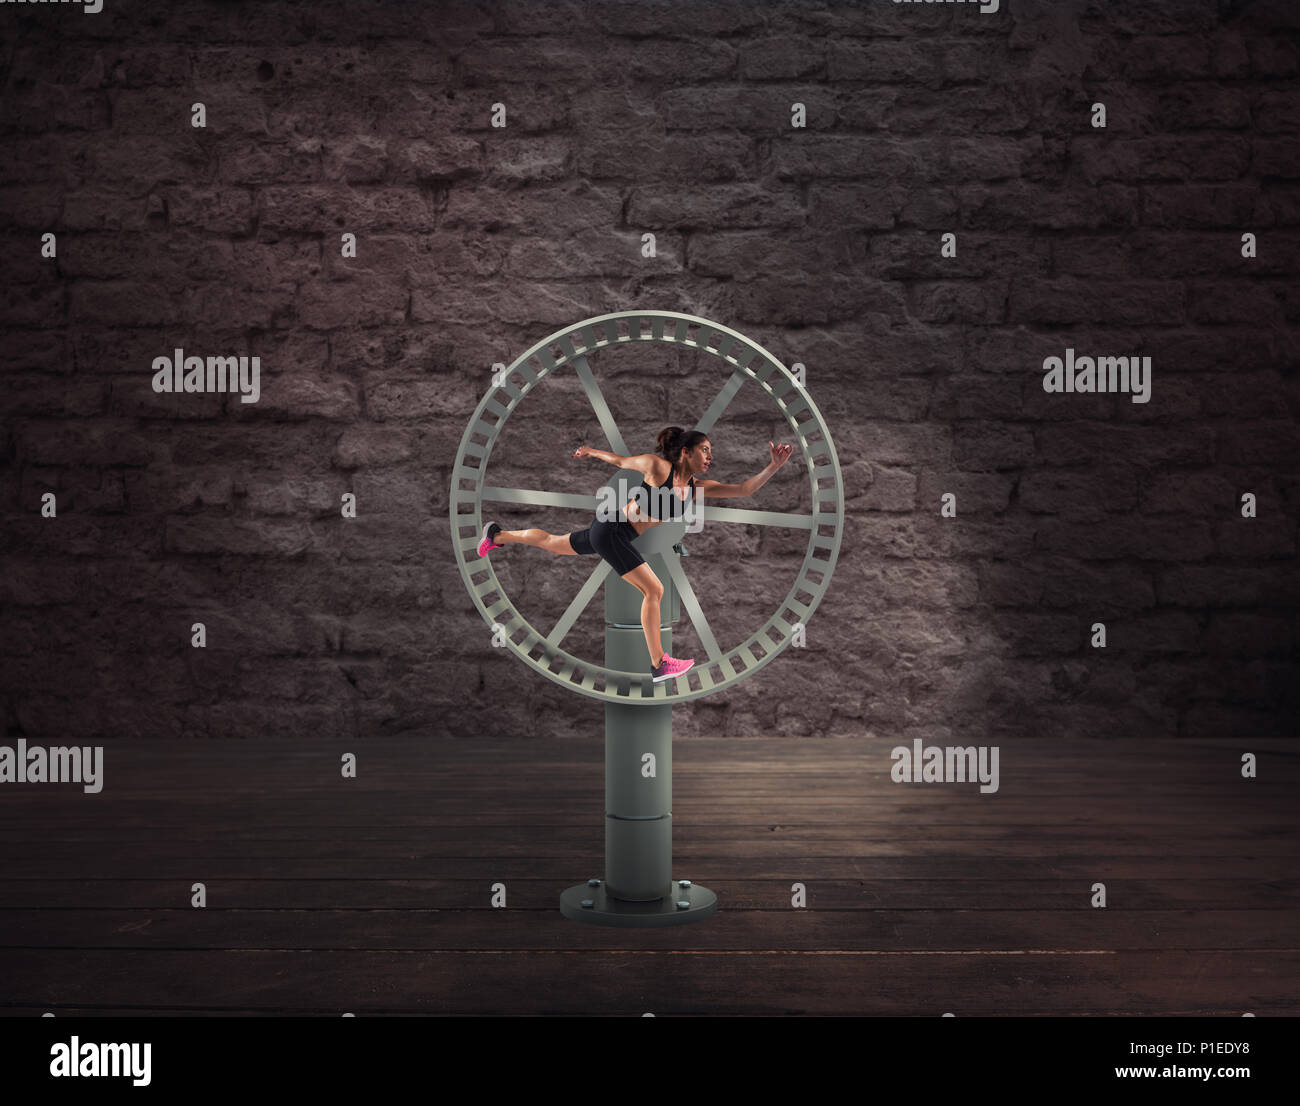 Athletic woman runs in a looping wheel. concept of sport routine - Stock Image